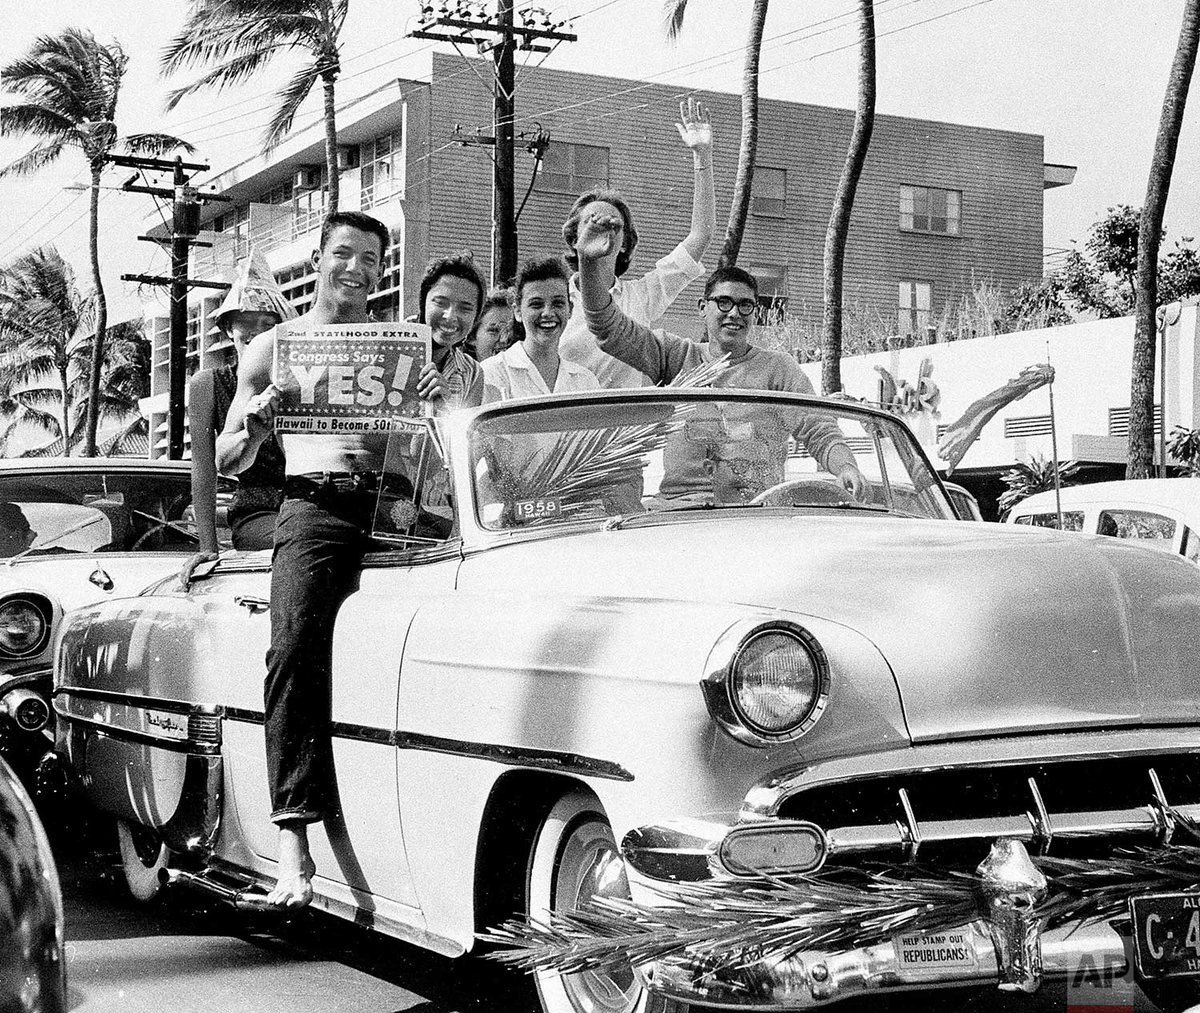 #OTD in 1959, President Dwight D. Eisenhower signed the Hawaii statehood bill. (Hawaii became a state on Aug. 21, 1959.)